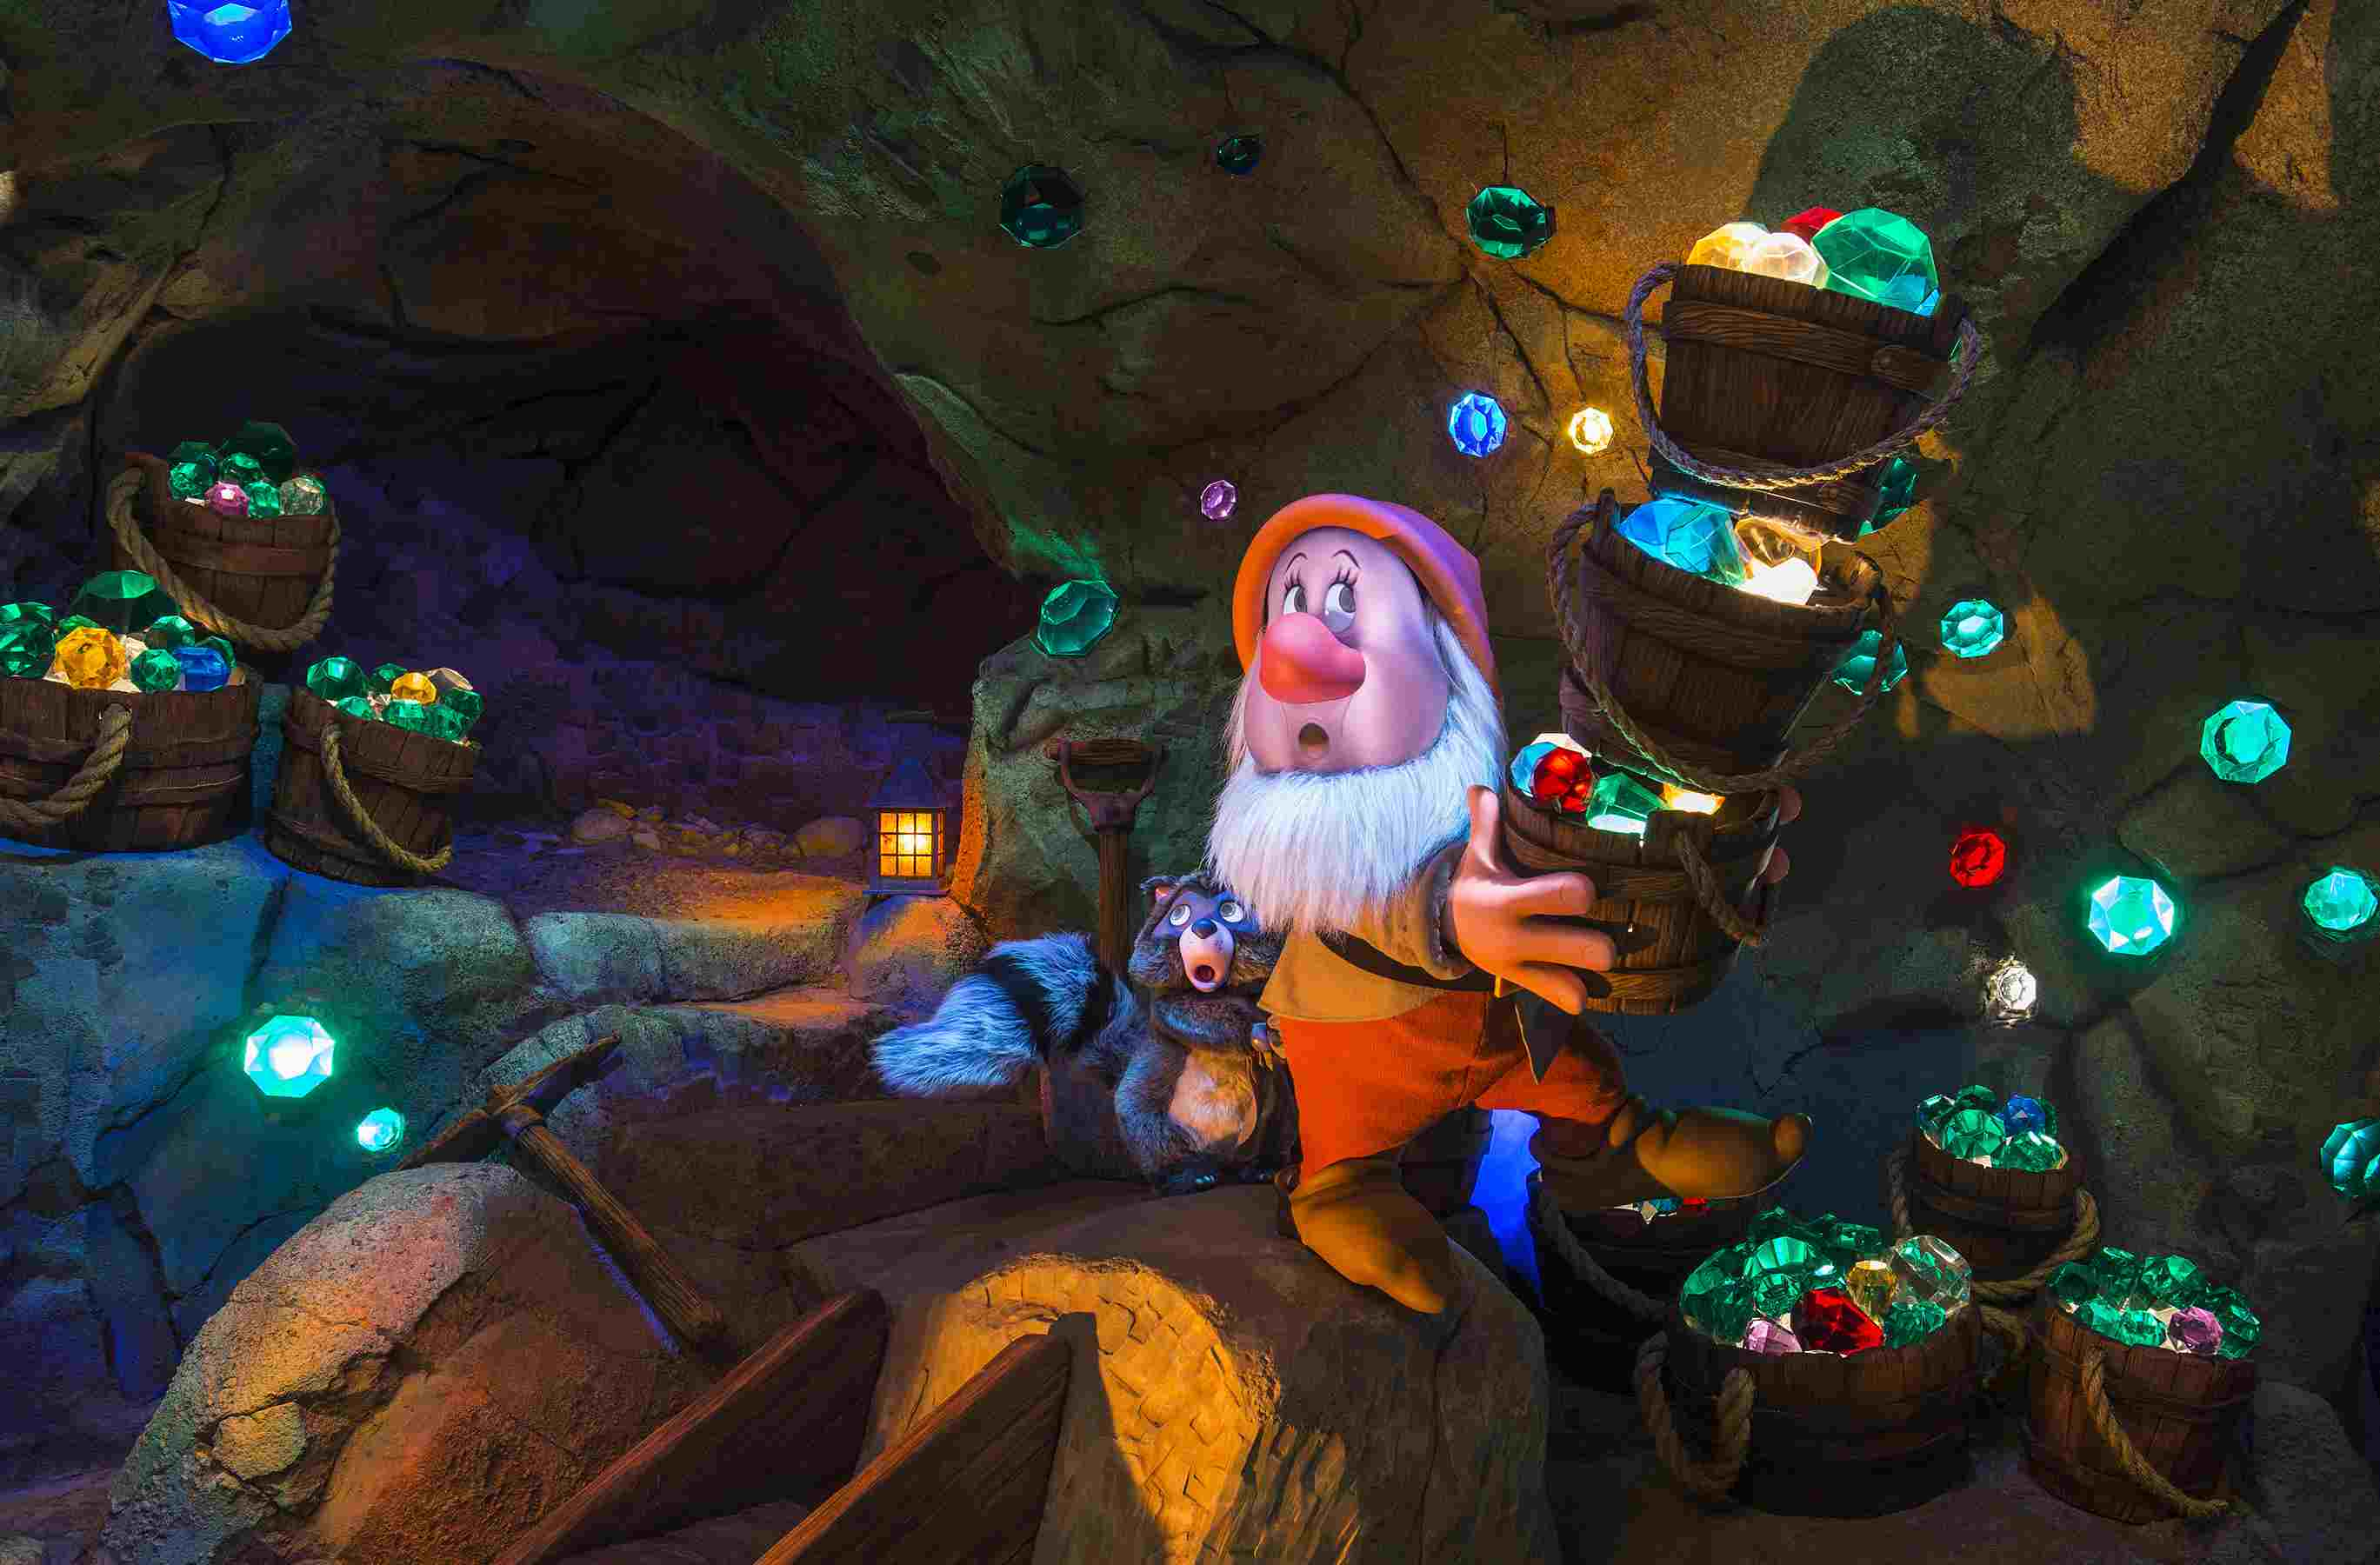 7 Cool Features of the Seven Dwarfs Mine Train Ride